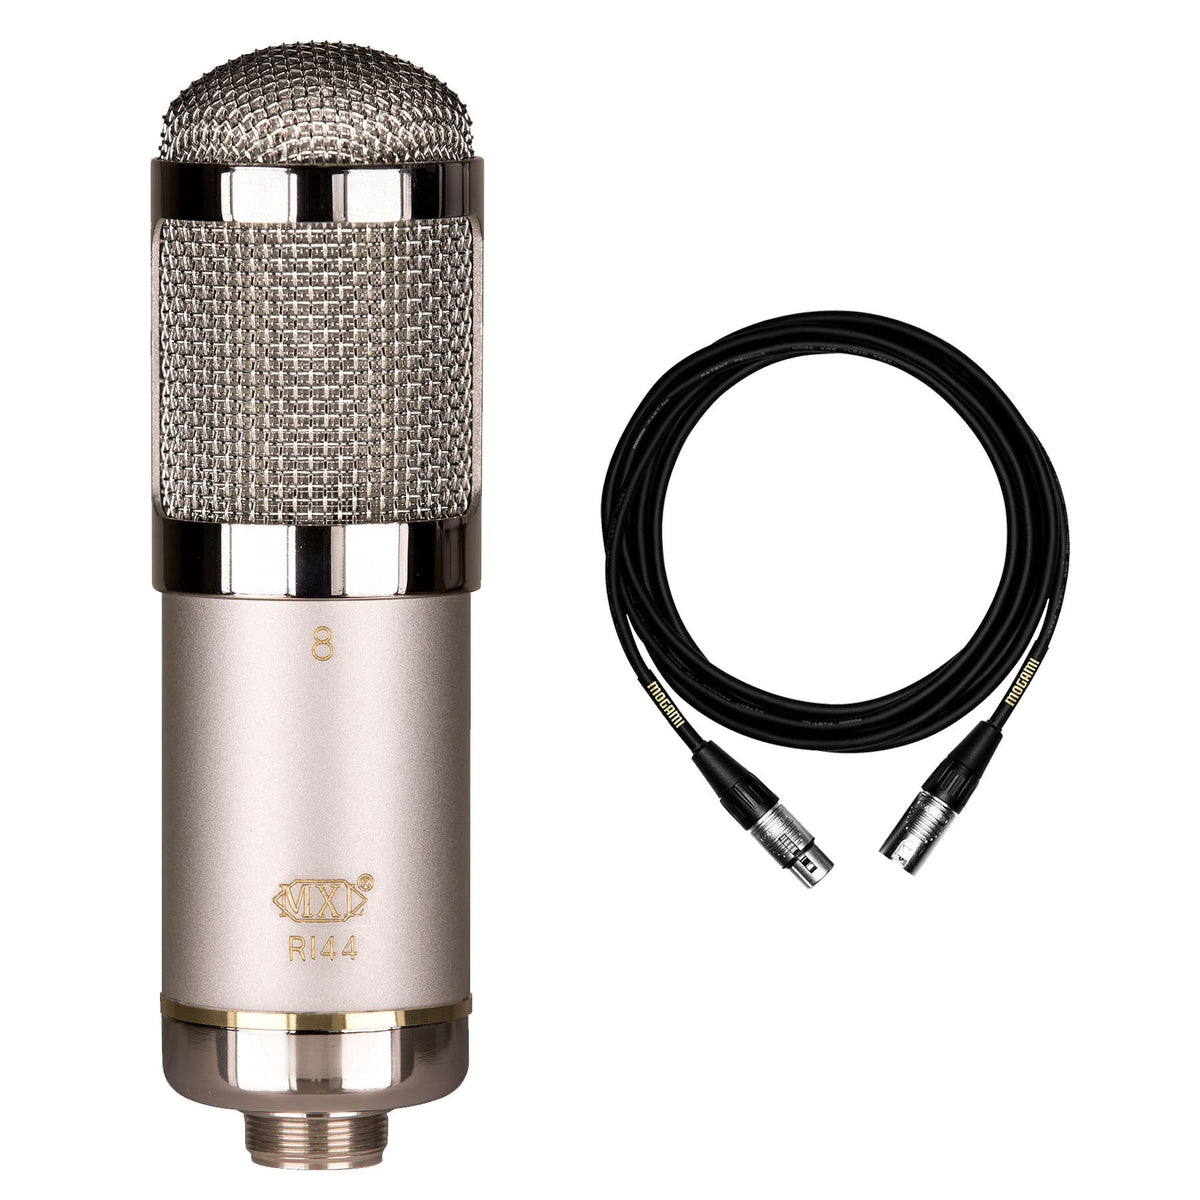 MXL R144 HE Microphone Bundle with Premium 15-foot XLR Mogami Cable